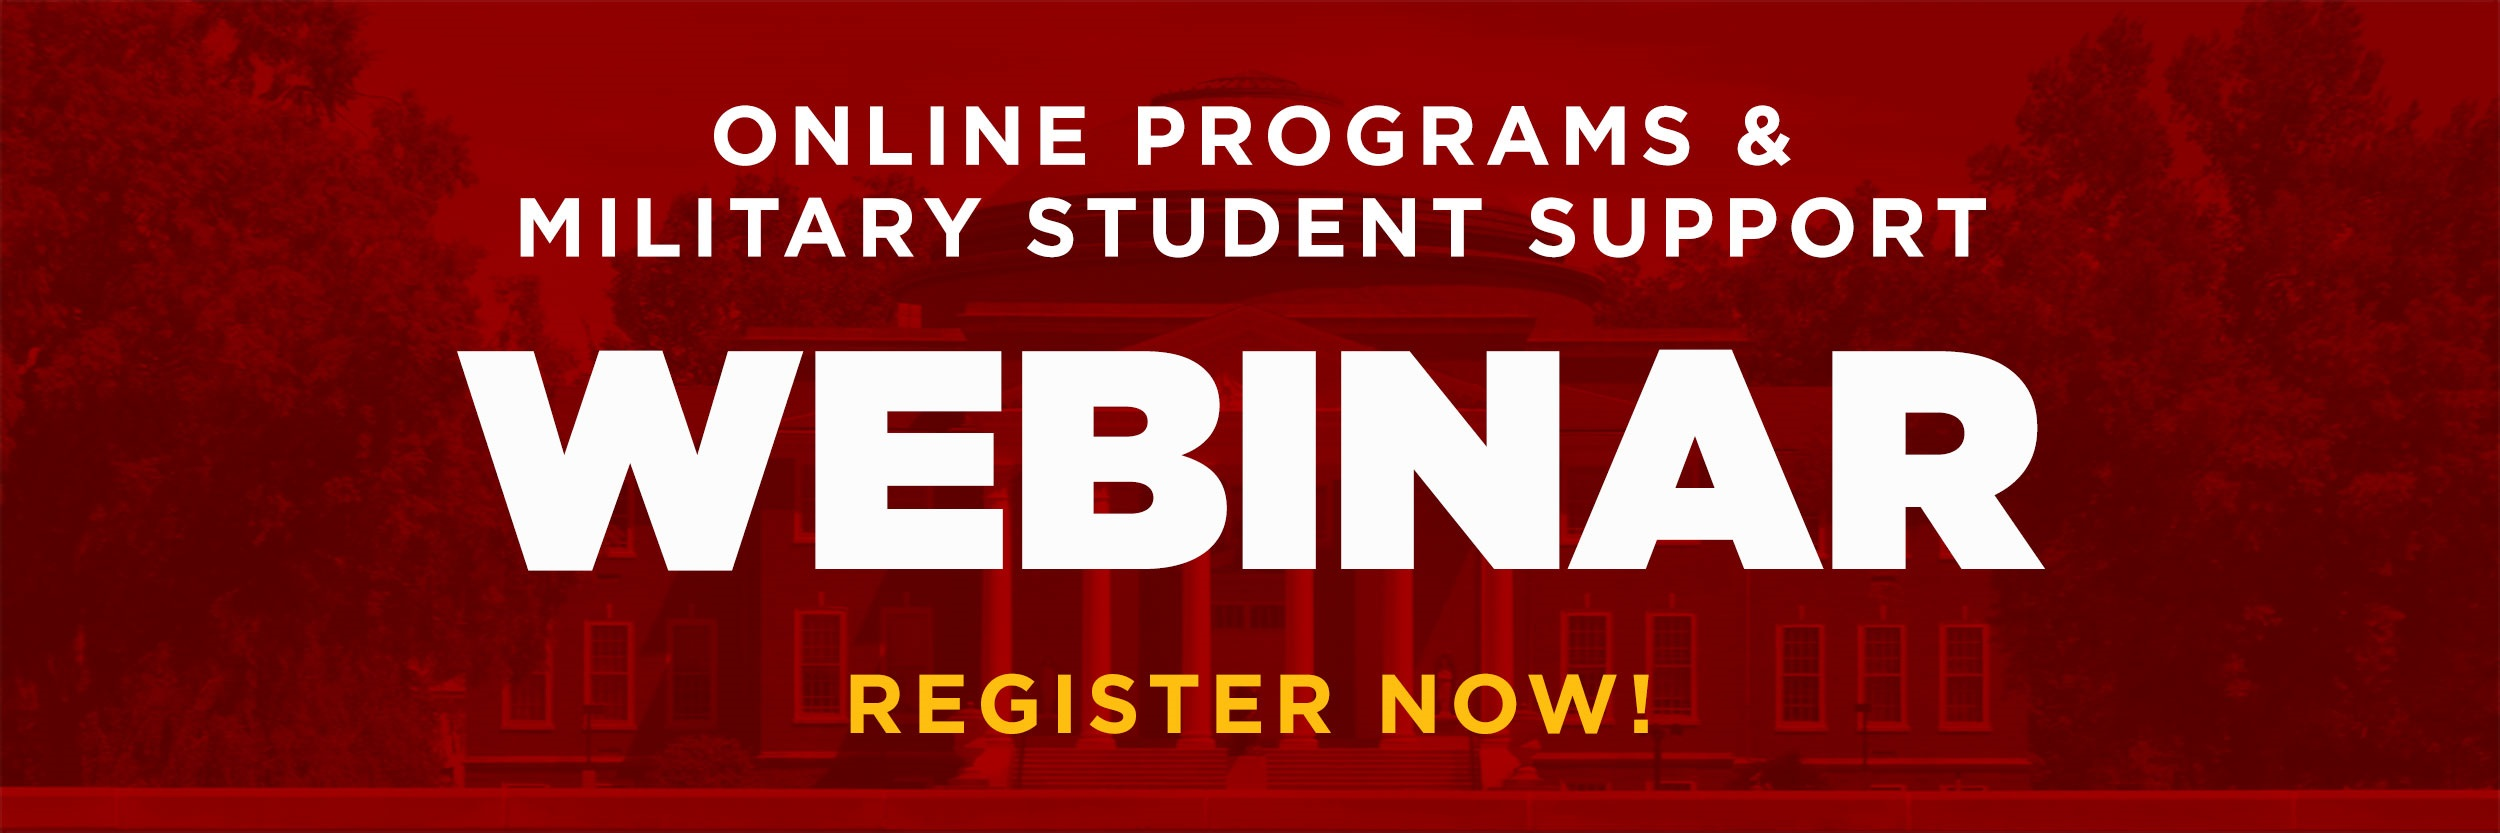 UofL Online Programs & Student Support Services - Military Webinar, Register Now